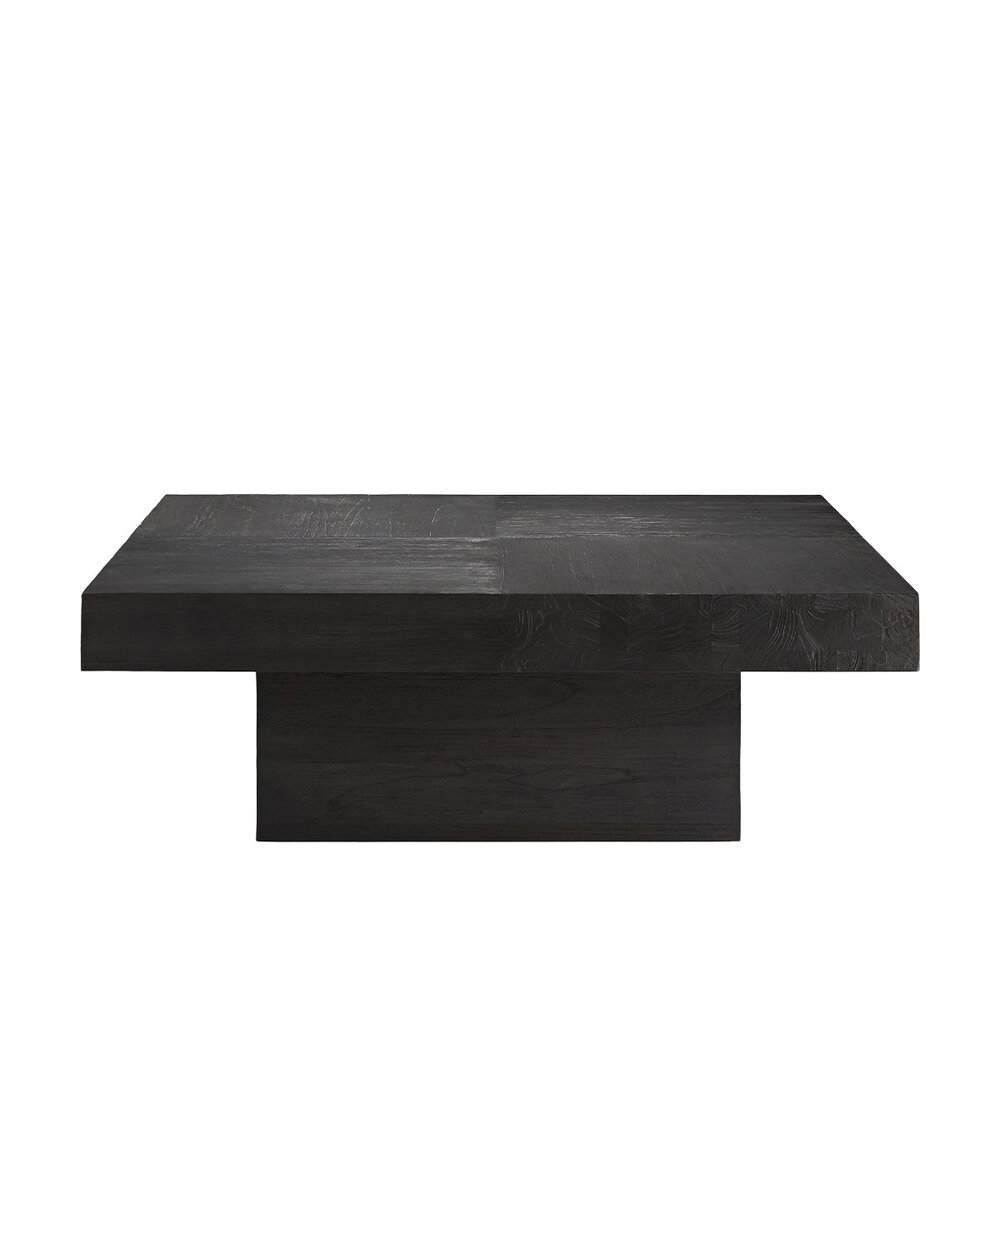 Campbell_Coffee_Table01.jpg